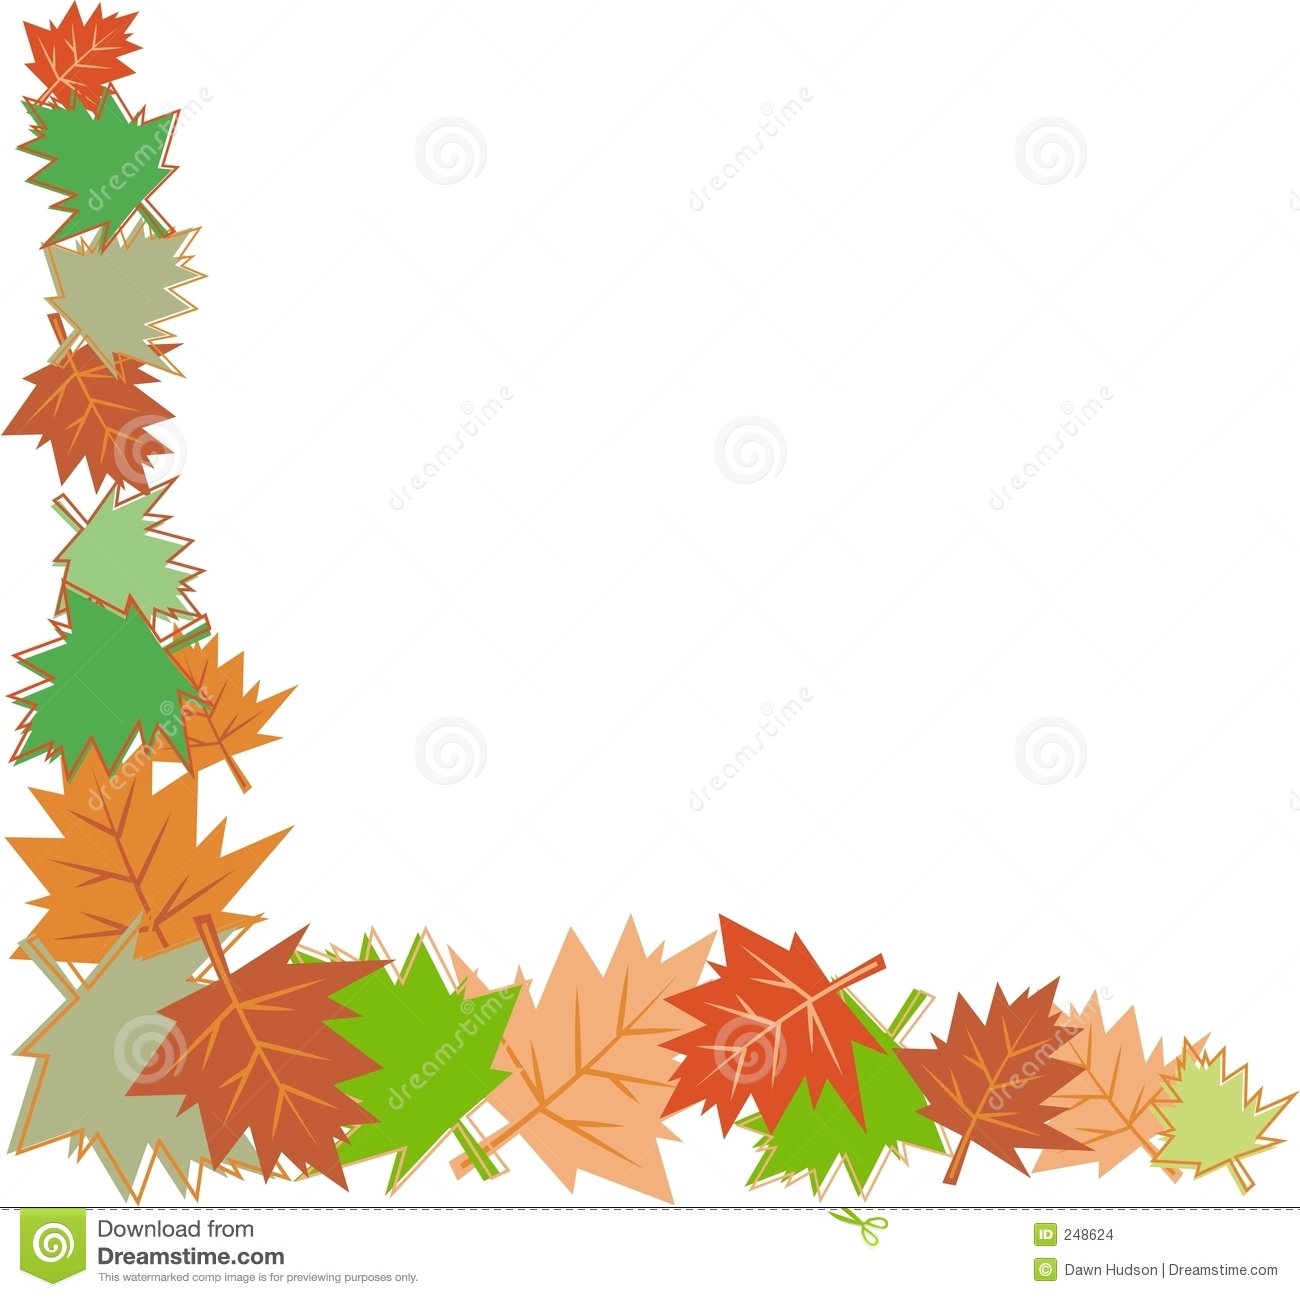 Fall Leaves Page Border http://www.dreamstime.com/stock-images-fall-leaves-border-image248624